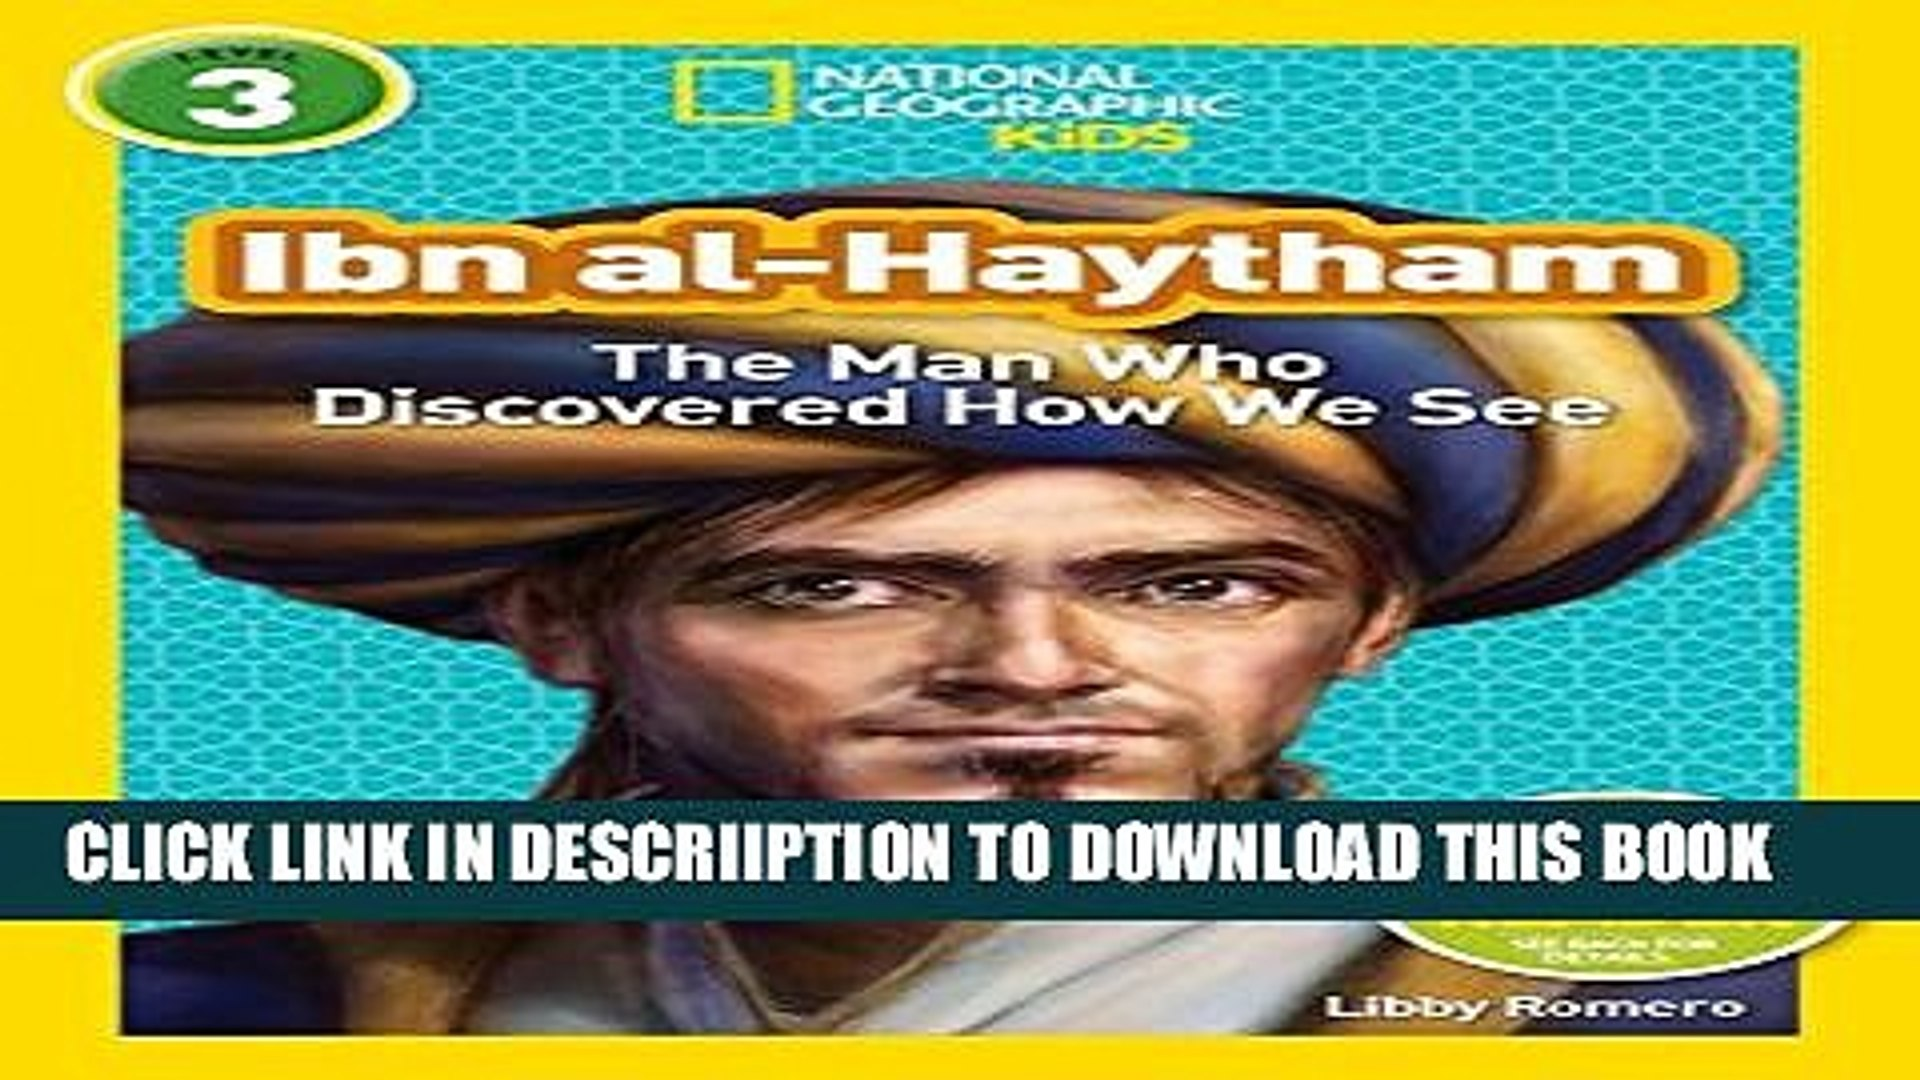 Ibn al-Haytham The Man Who Discovered How We See National Geographic Readers